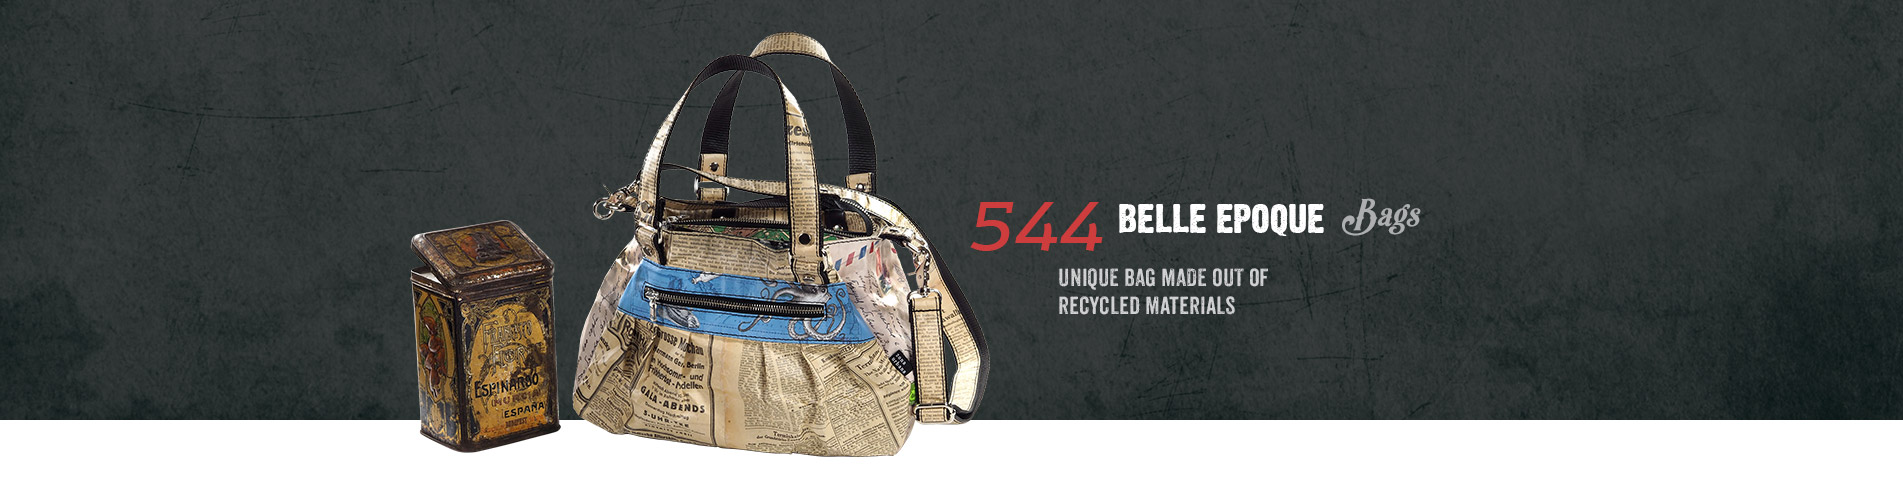 544 Belle Epoque Bags